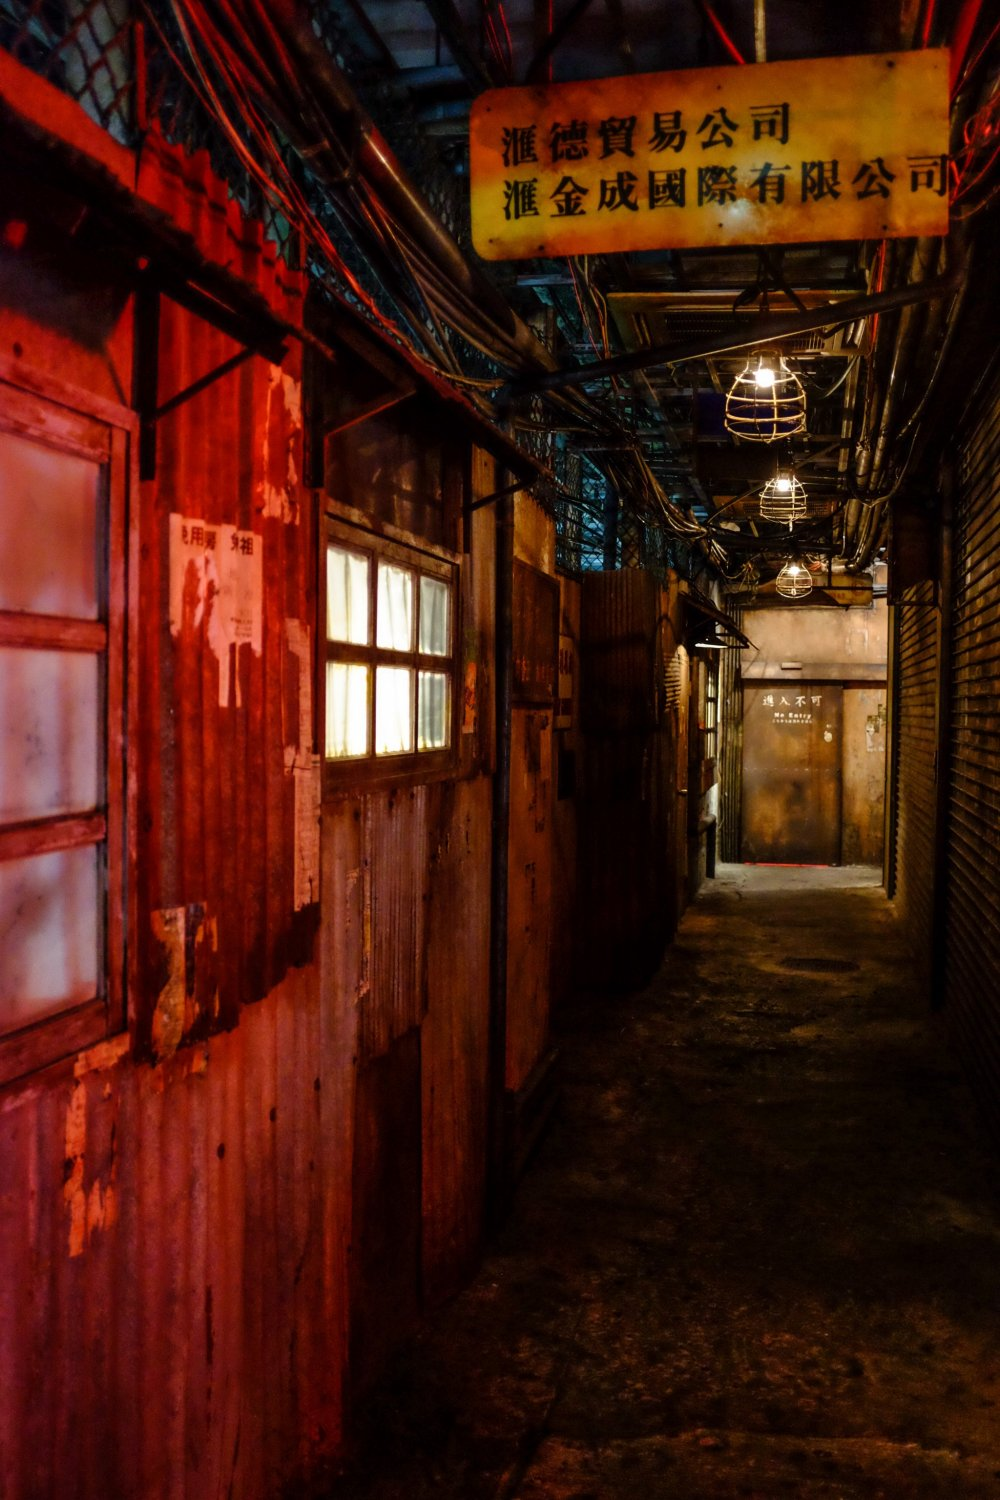 You're immediately immersed in a dark and dingy alleyway constructed with the look and feel of the original Kowloon Walled City